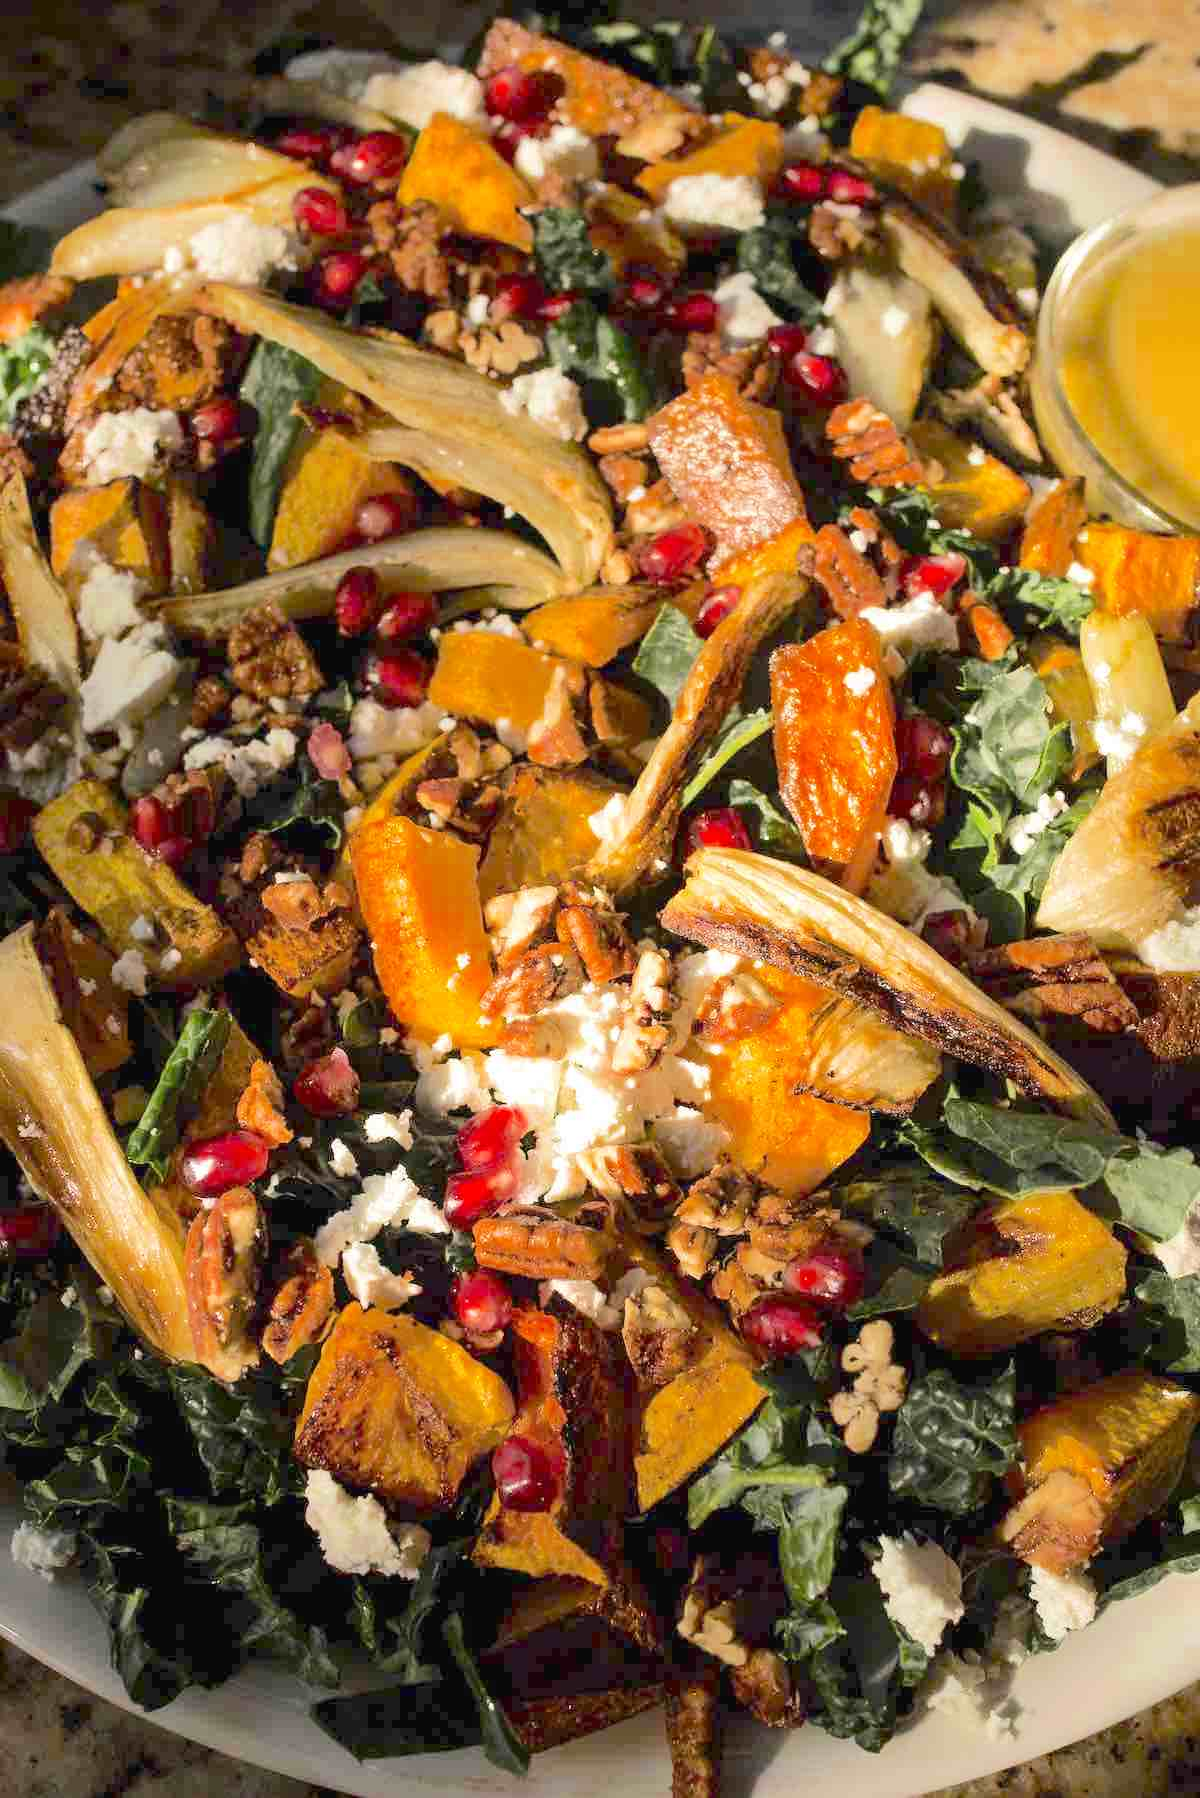 A close-up of the finished kale salad recipe